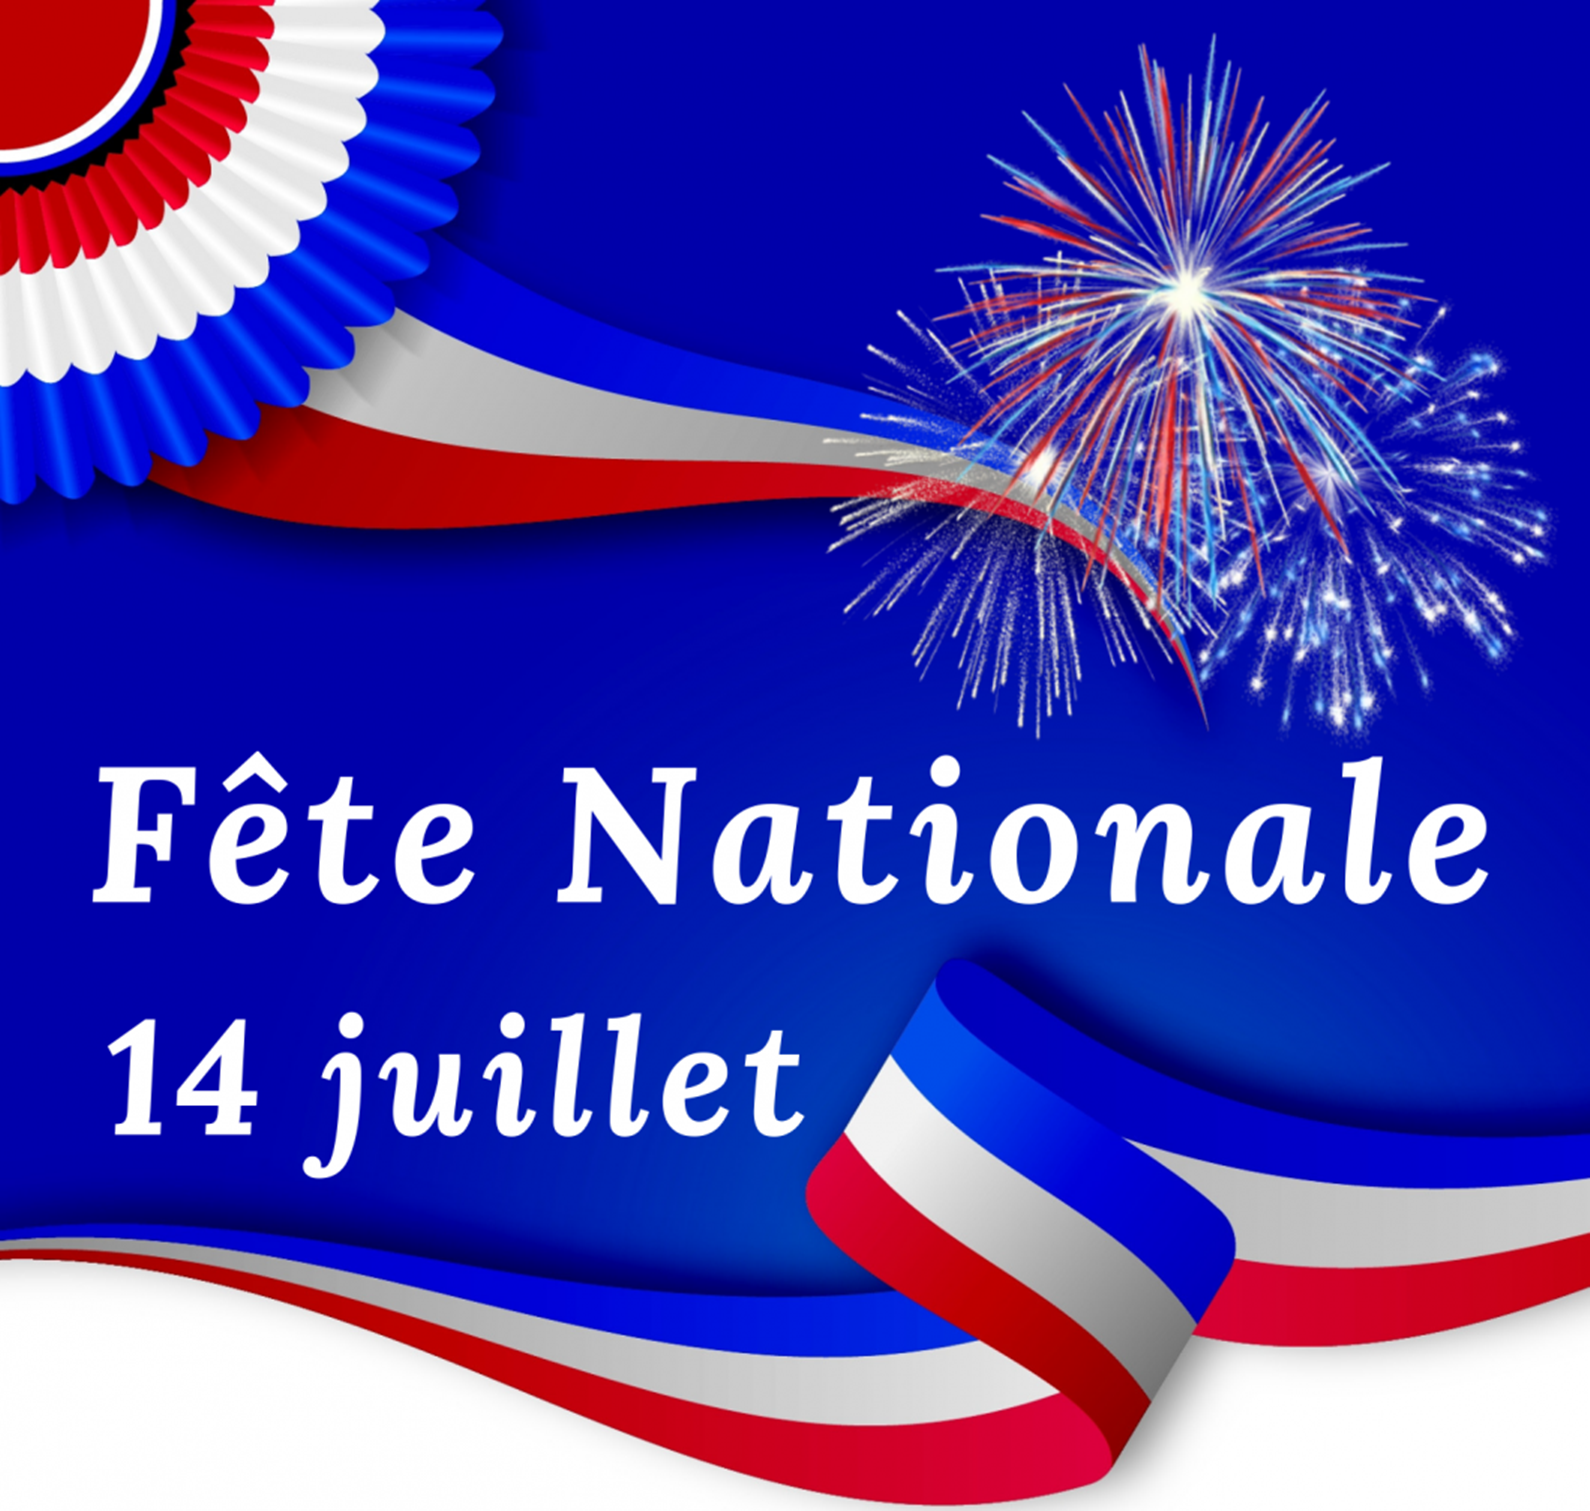 x2019-07-10_105100_ill1_Fe-te-Nationale-14-juillet.png.pagespeed.ic.U959Dsy2aq